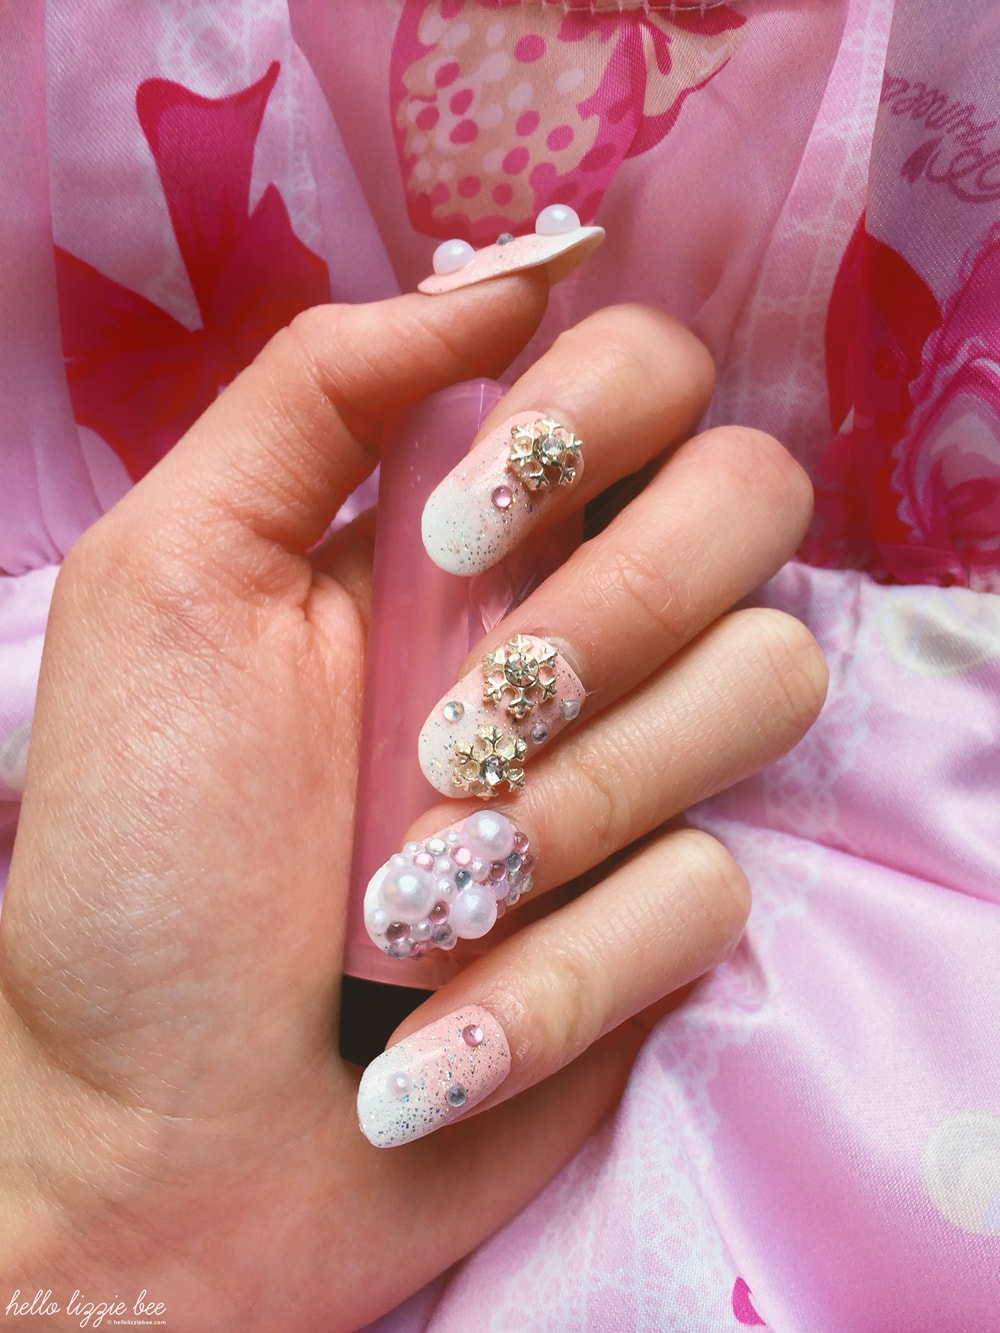 gyaru nails, hime gyaru nails, christmas nails